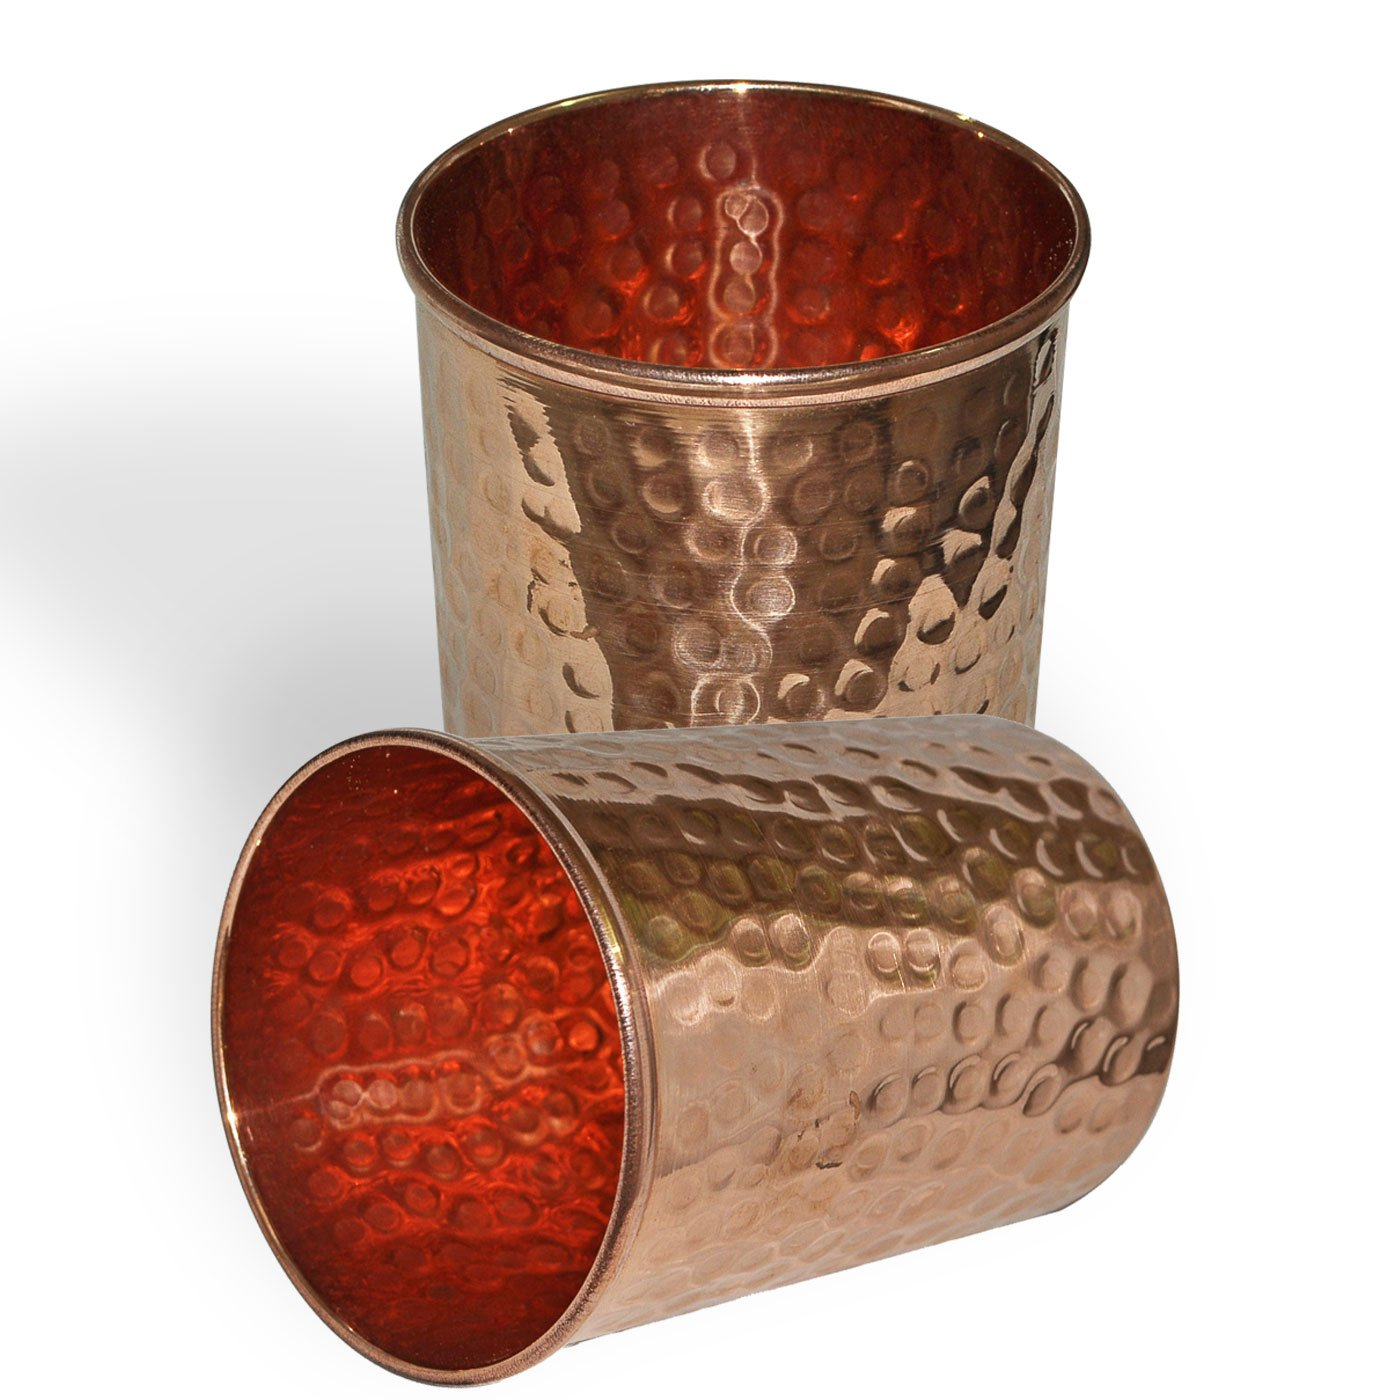 Dakshcraft Handmade Pure Copper Hammered Tumbler,Set of 2